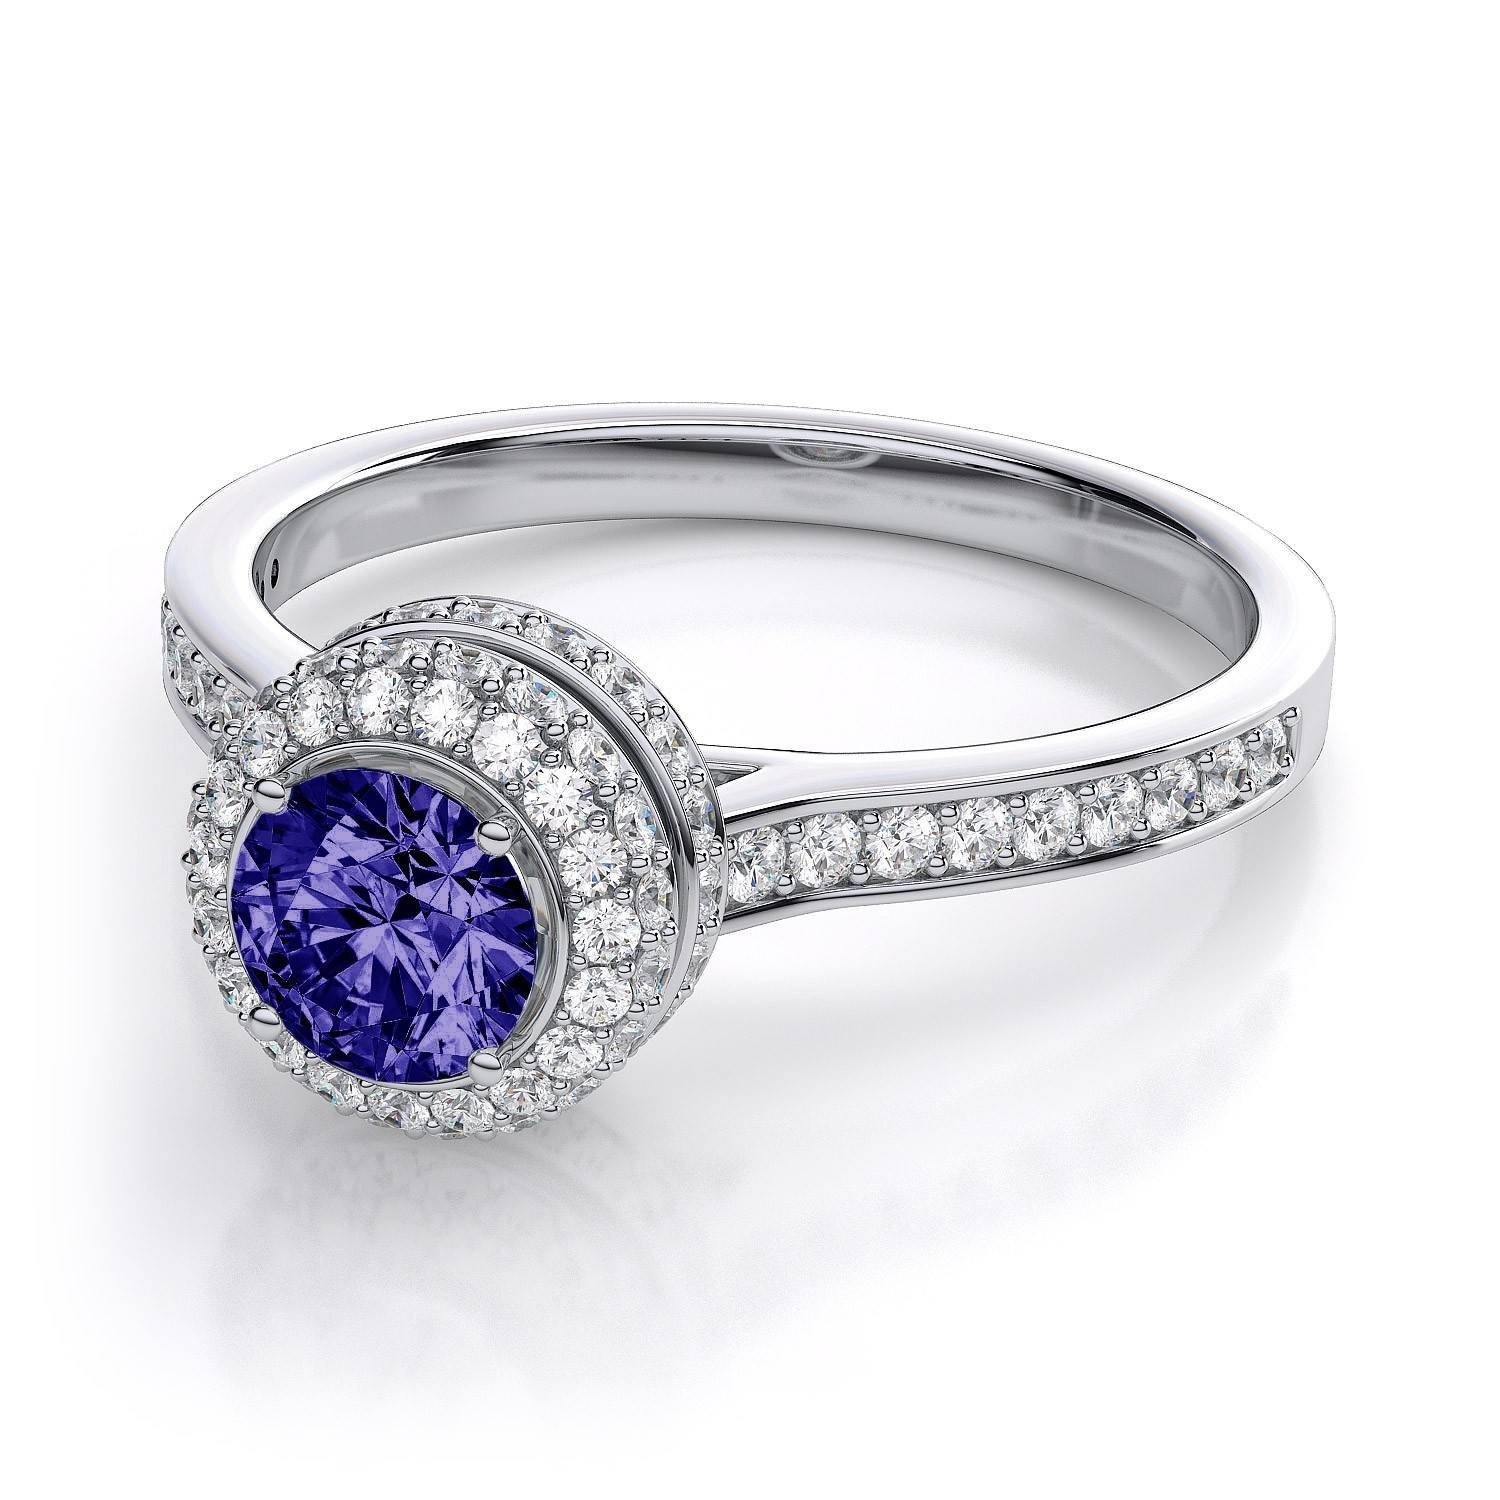 Cirque Halo Tanzanite And Diamond Engagement Ring In 14K White Gold Regarding Diamond Tanzanite Engagement Rings (View 6 of 15)